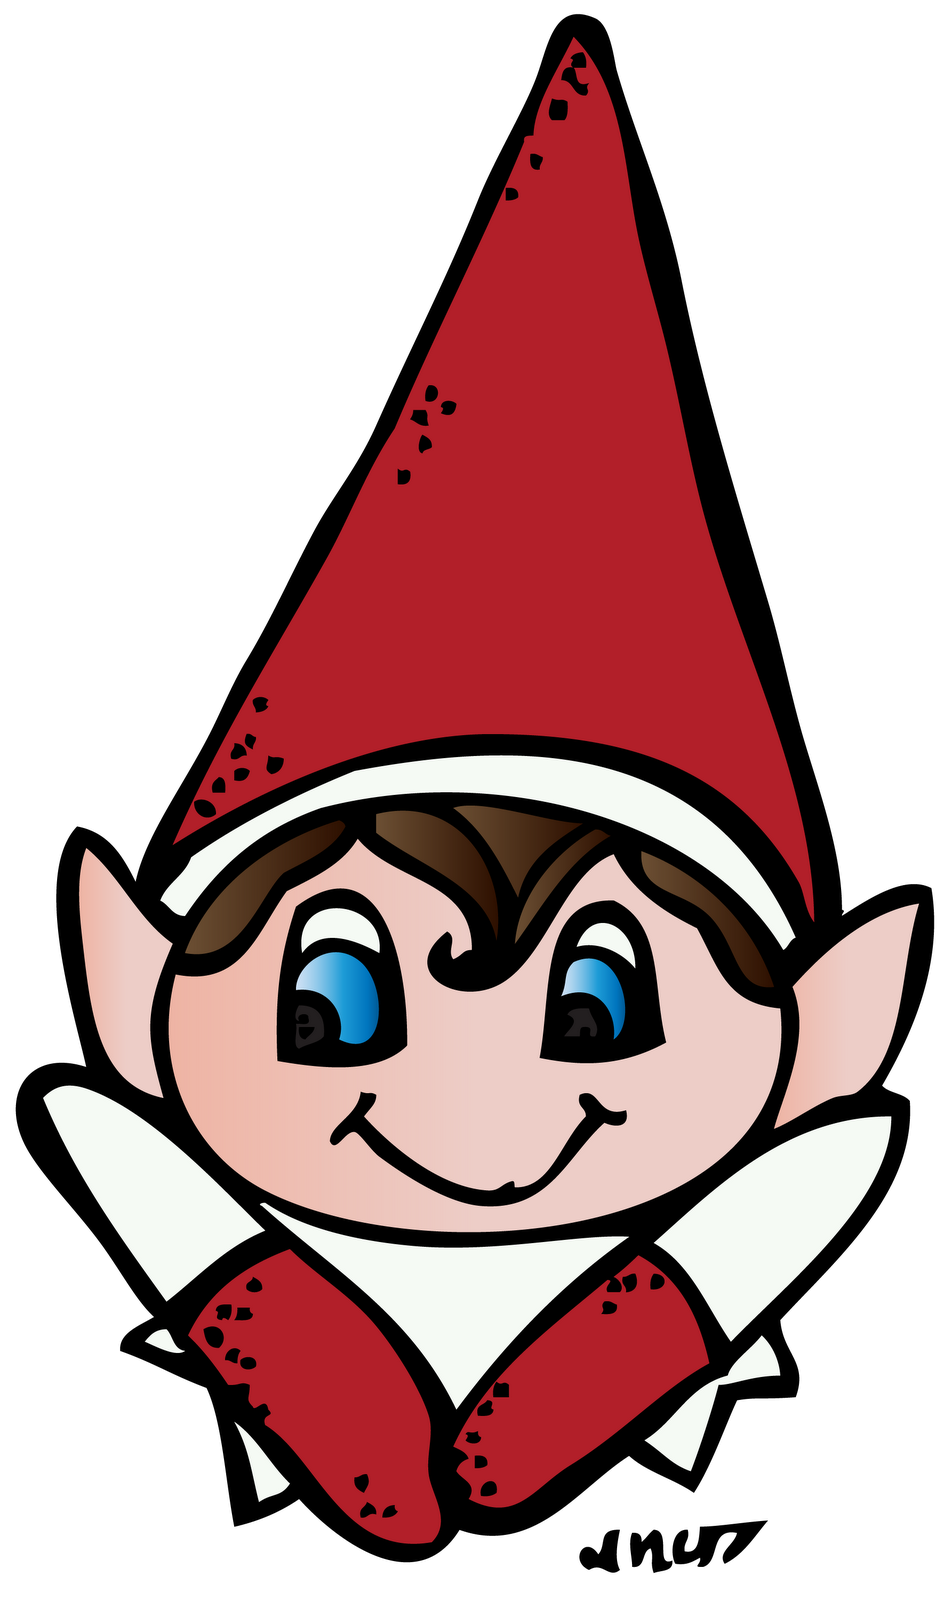 Kiss clipart elf. Kissing images collection classroom